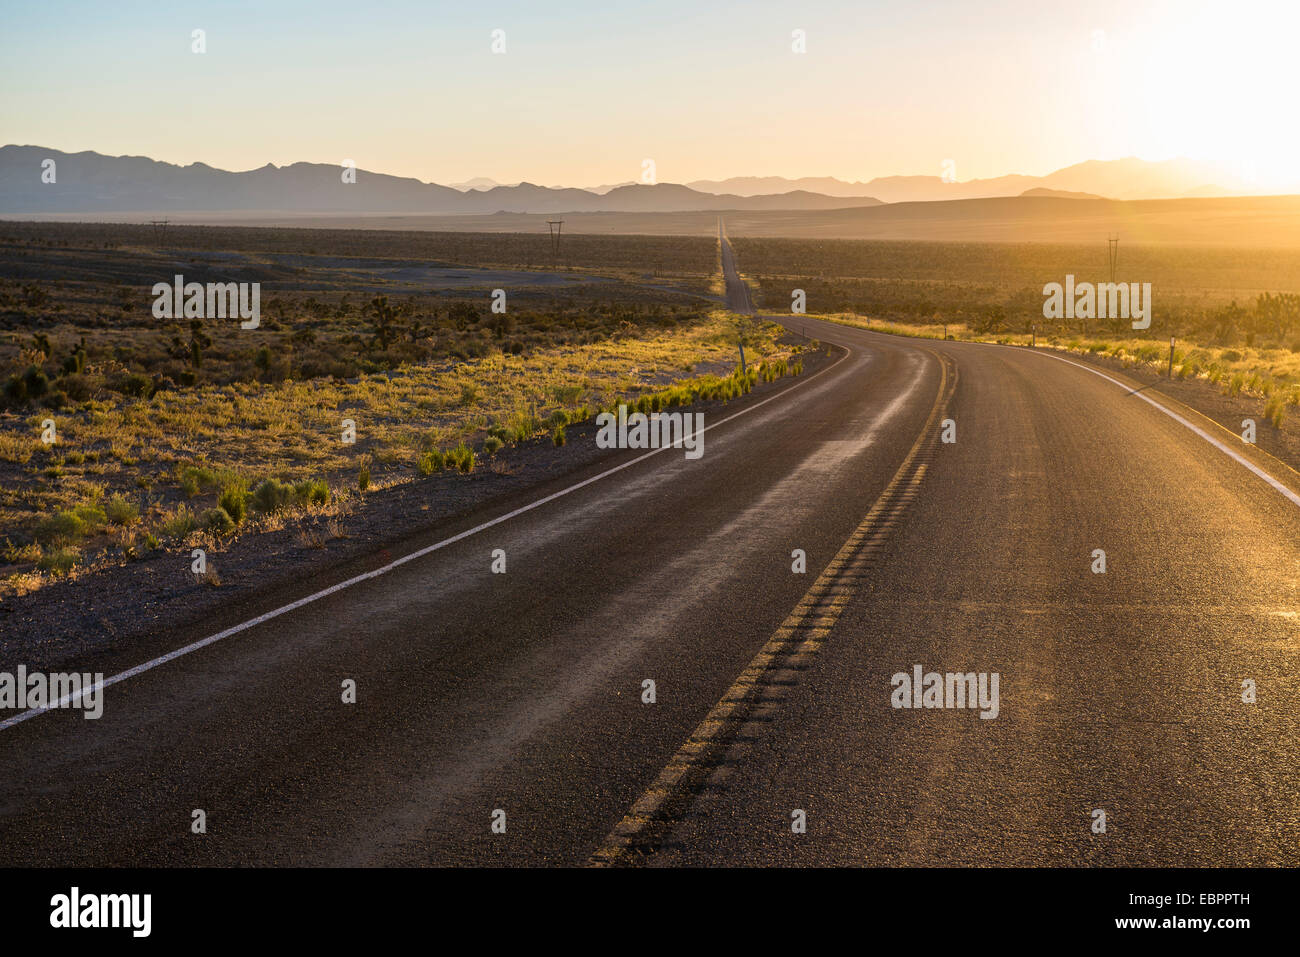 Long winding road at sunset in eastern Nevada, United States of America, North America - Stock Image